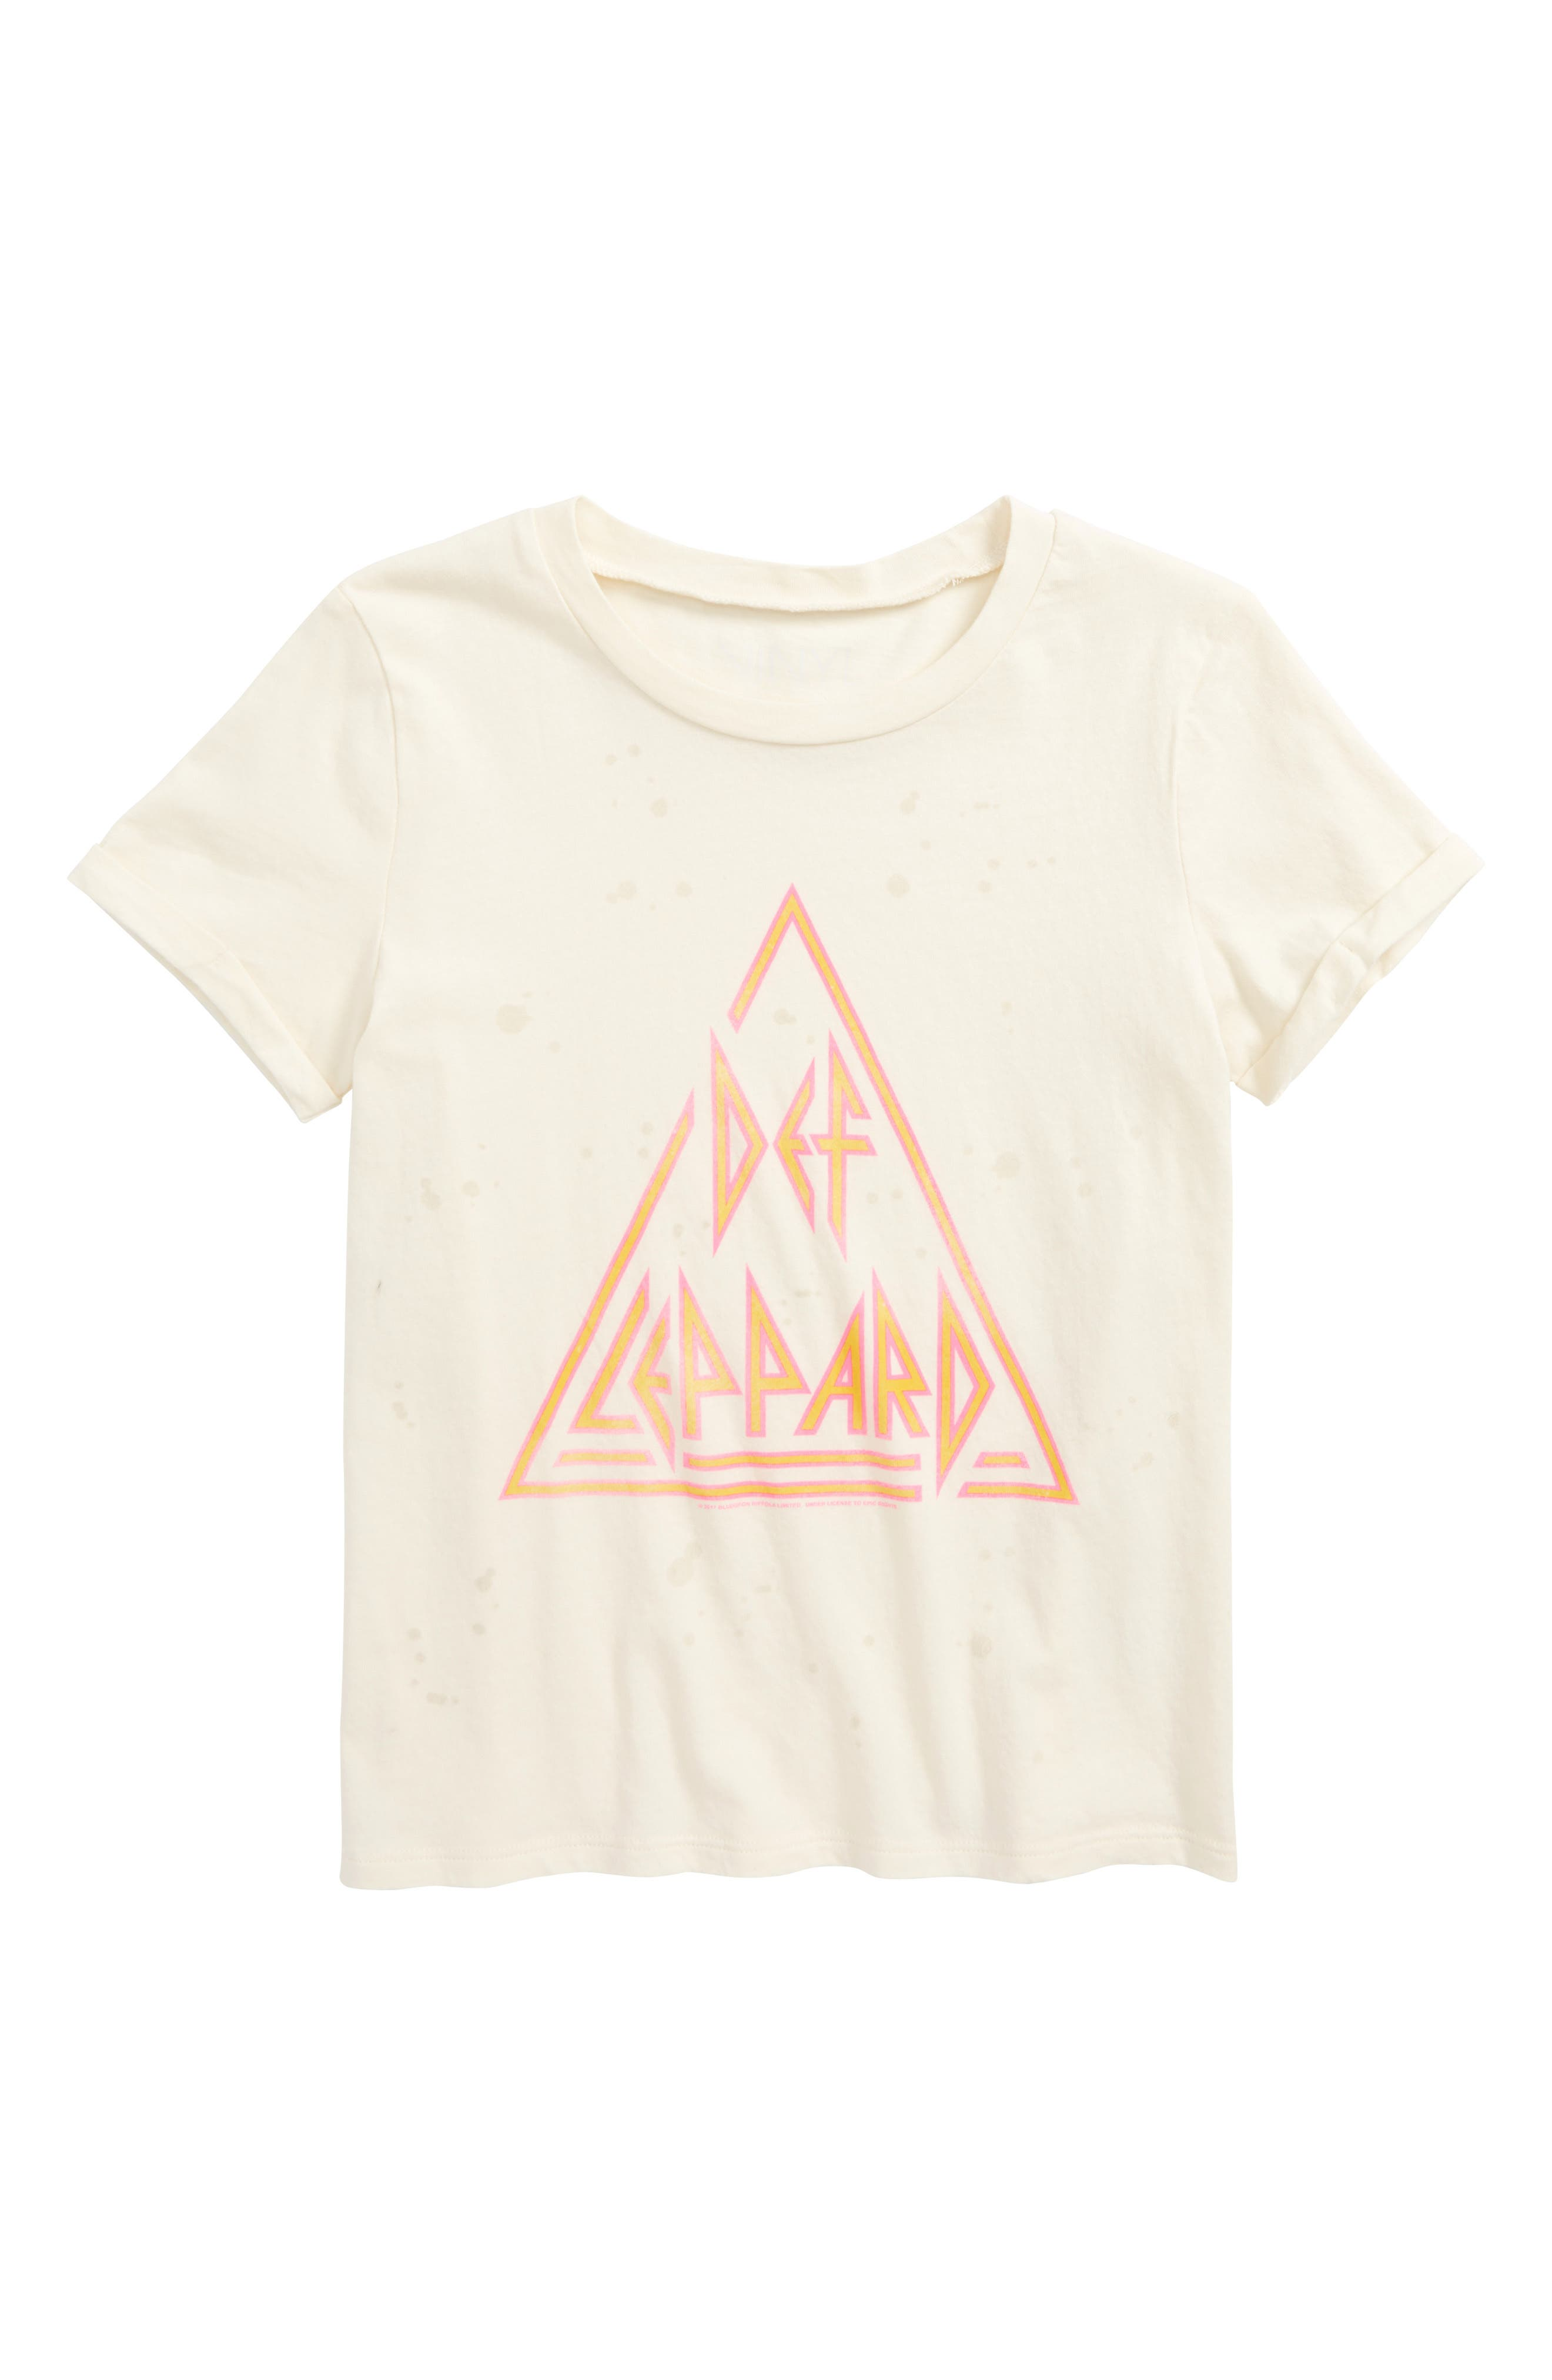 Def Leppard Graphic Tee,                             Main thumbnail 1, color,                             Ivory